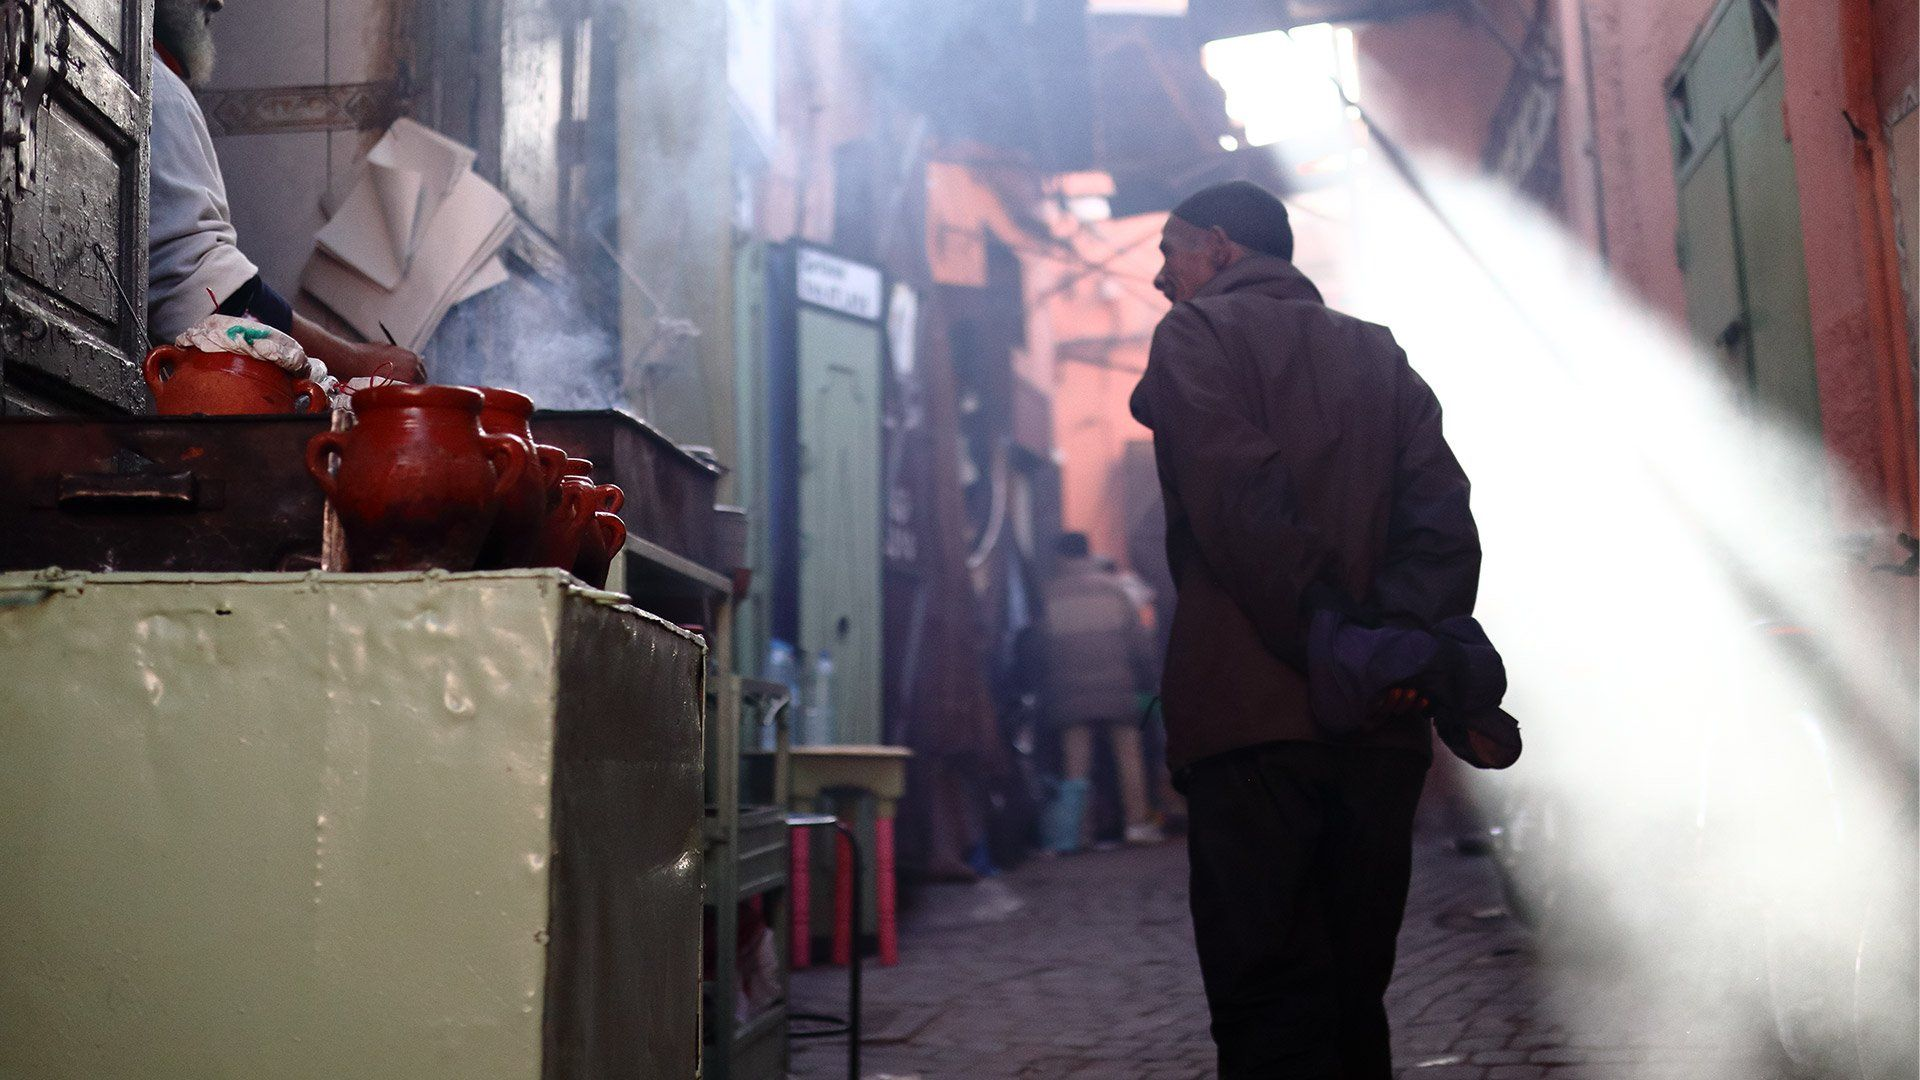 Moroccan man in alley shot using Canon EF-M 32mm f/1.4 STM